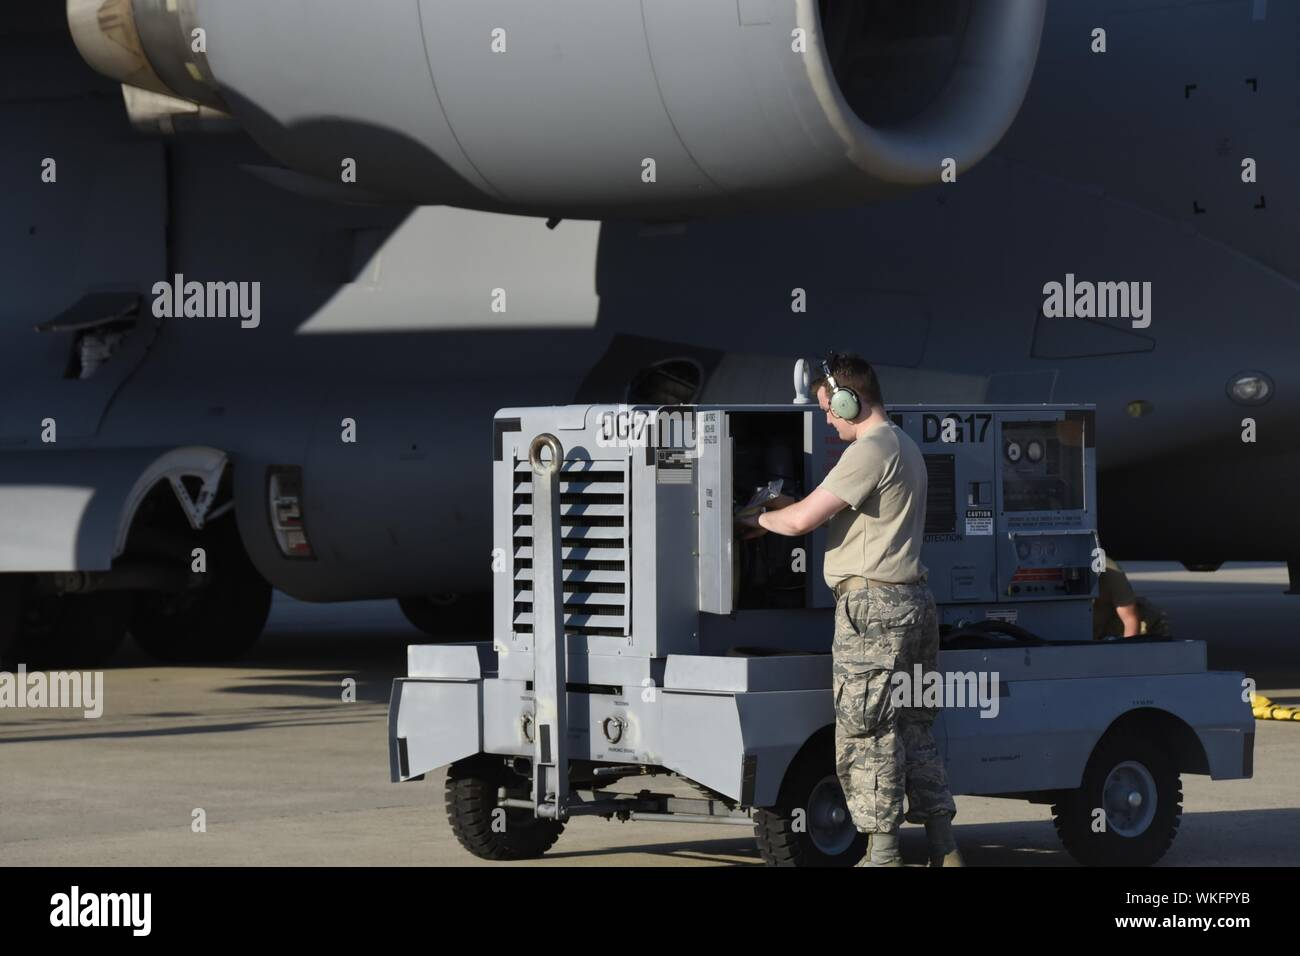 Members of the 145th Maintenance Group prepare the C-17 Globemaster III's to deploy in support of Hurricane Dorian relief in advance of the storms arrival, while at the North Carolina Air National Guard Base, Charlotte NC, 3 Sep. 2019, September 3, 2019. Hurricane Dorian is a Category three storm that caused severe damage to the Bahamas with a projection to hit North Carolina, each year the 145th Airlift Wing responds and prepares for any hurricane in the event of stateside landfall. Image courtesy Airman 1st Class Juan Paz/145th Airlift Wing, Public Affairs North Carolina Air National Guard.  Stock Photo